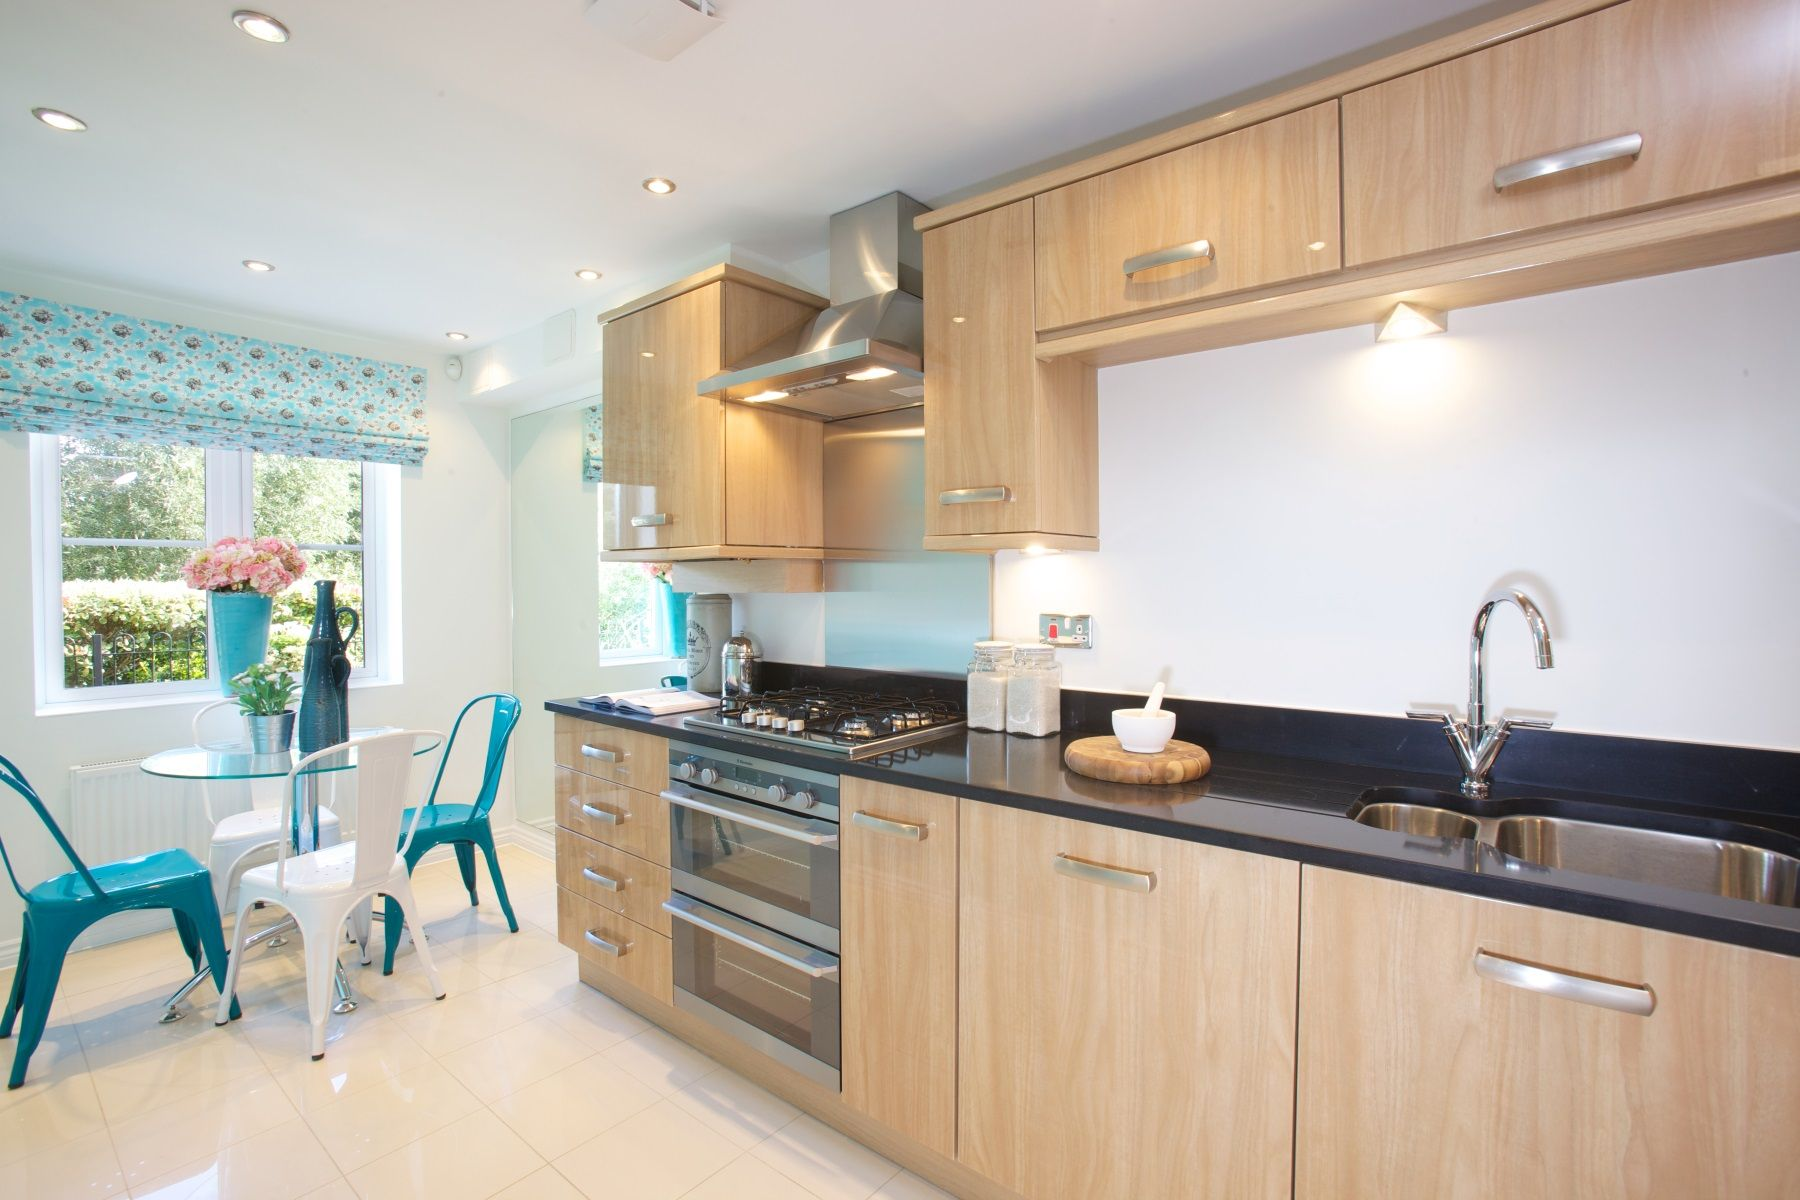 TW Exeter - Cranbrook - Hamborough example kitchen